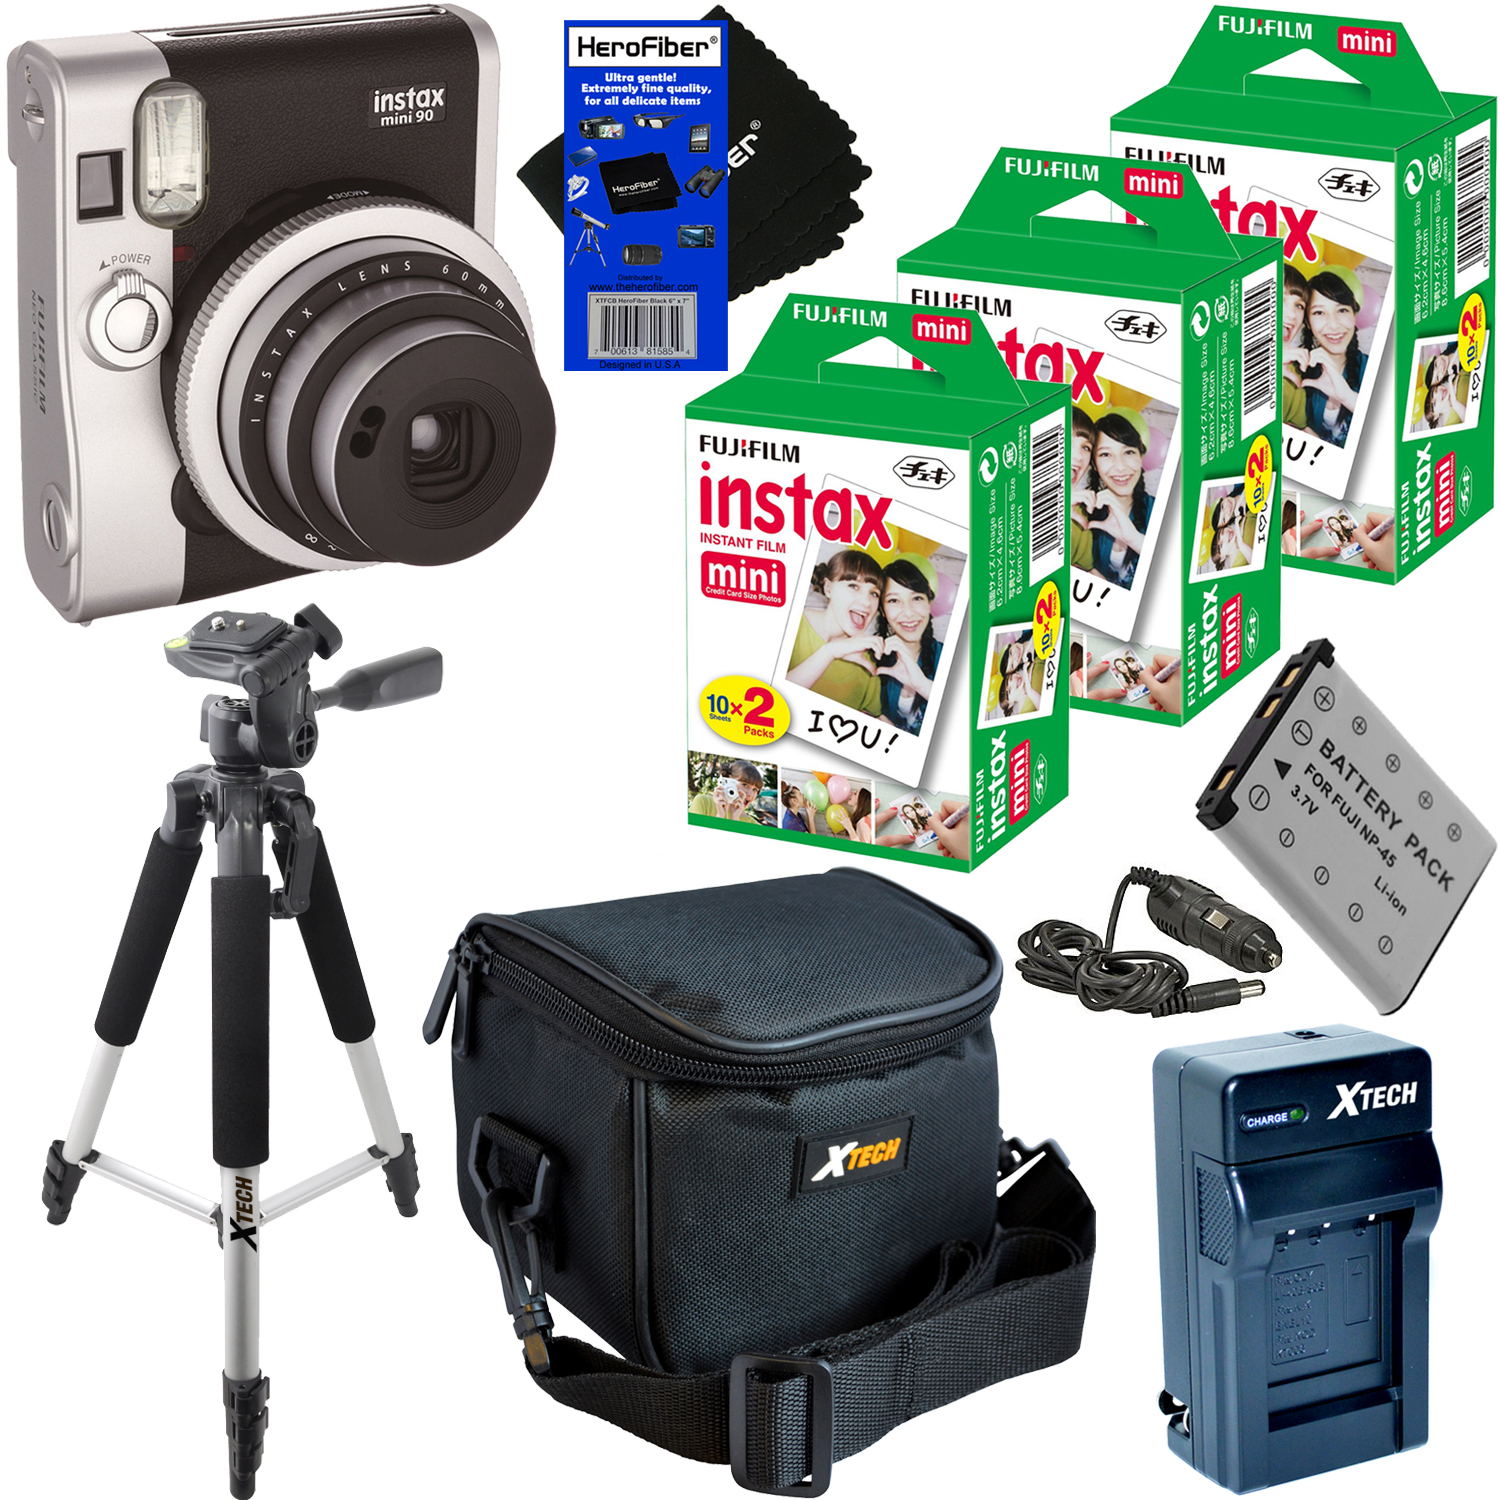 FujiFilm Instax Mini 90 Neo Classic Instant Film Camera (Black) + Instax Mini Instant Film (60 SHeets) + Full... by Fujifilm